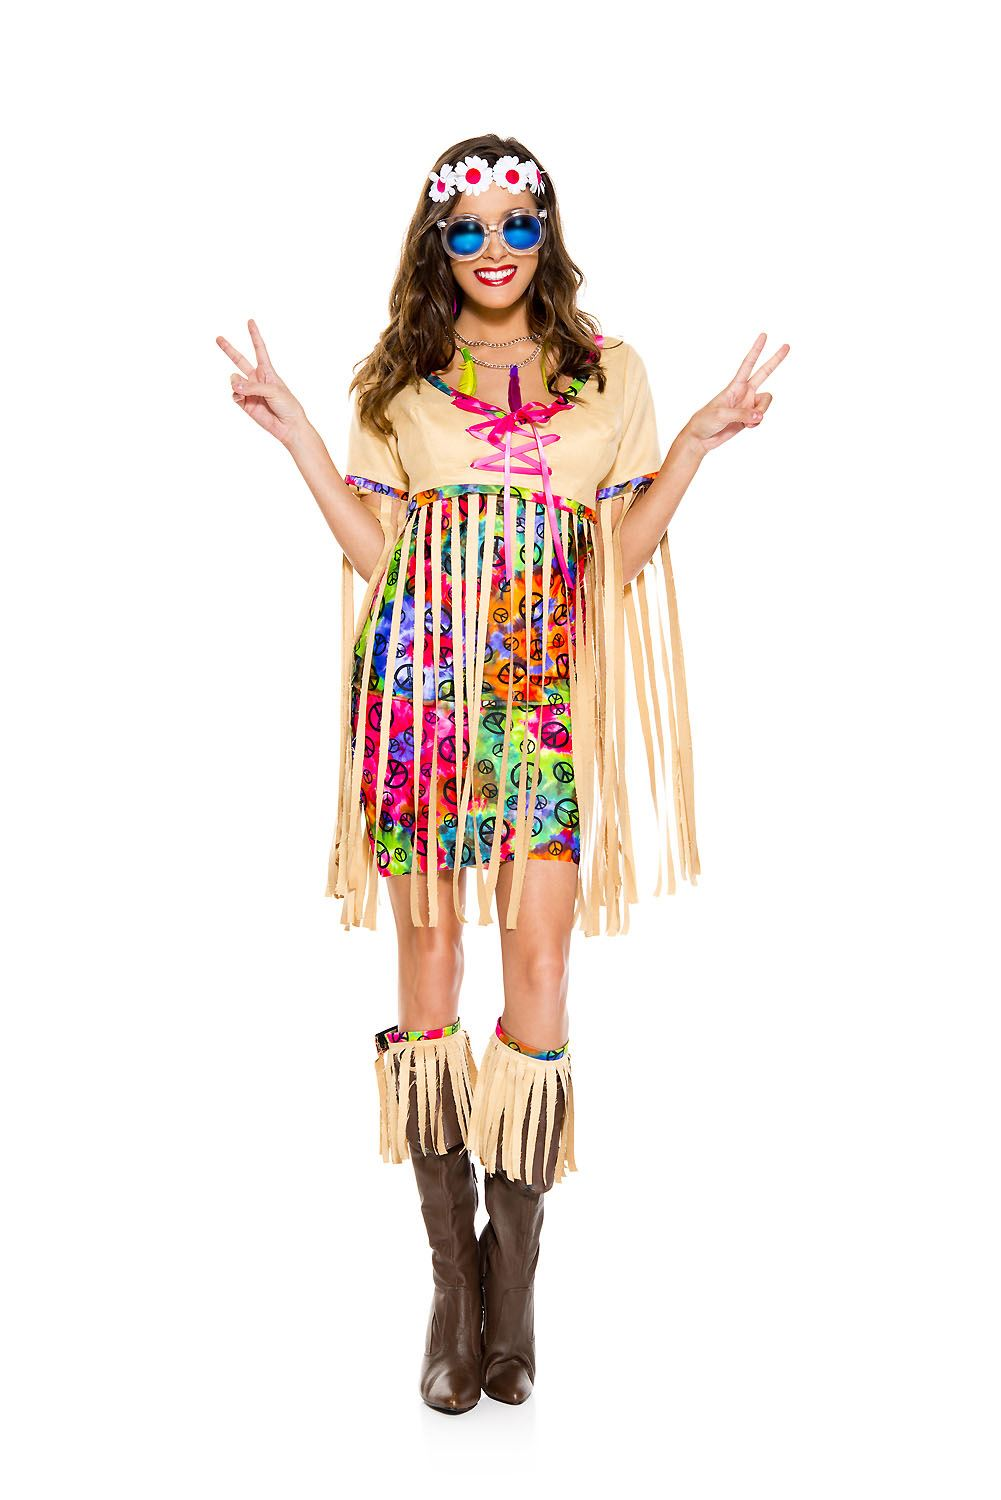 Adult Retro Hipster Woman Costume ...  sc 1 st  The Costume Land & Adult Retro Hipster Woman Costume | $57.99 | The Costume Land